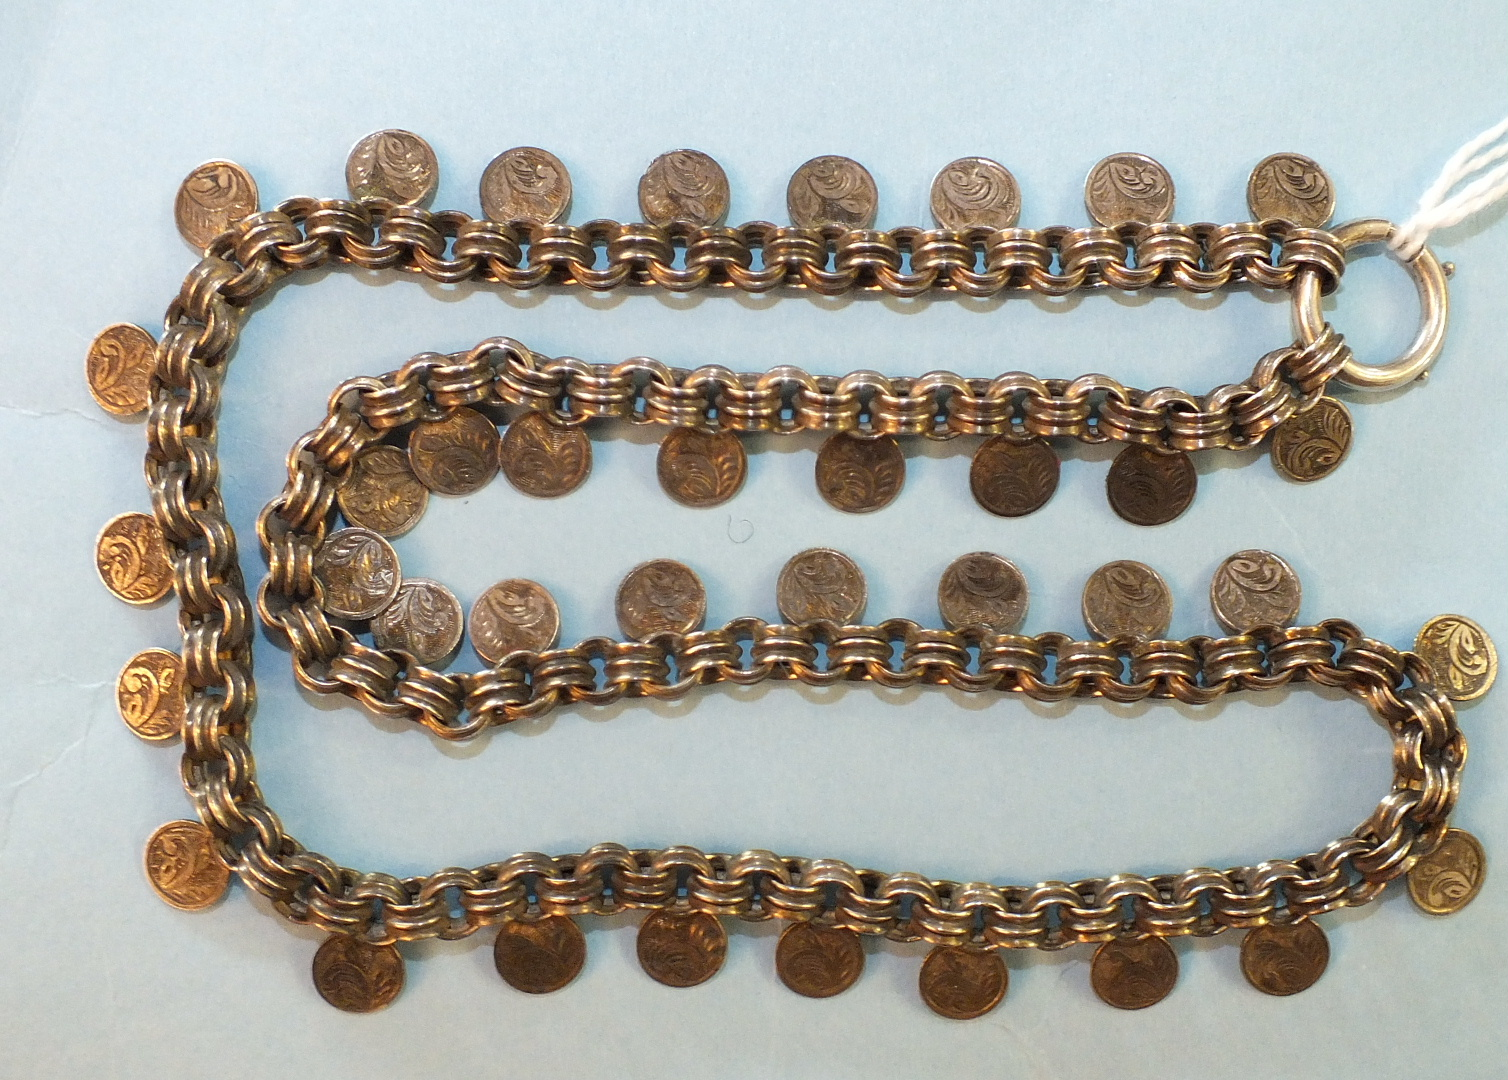 Lot 164 - A Victorian unmarked silver necklace of ribbed links and small engraved discs, with bolt-ring